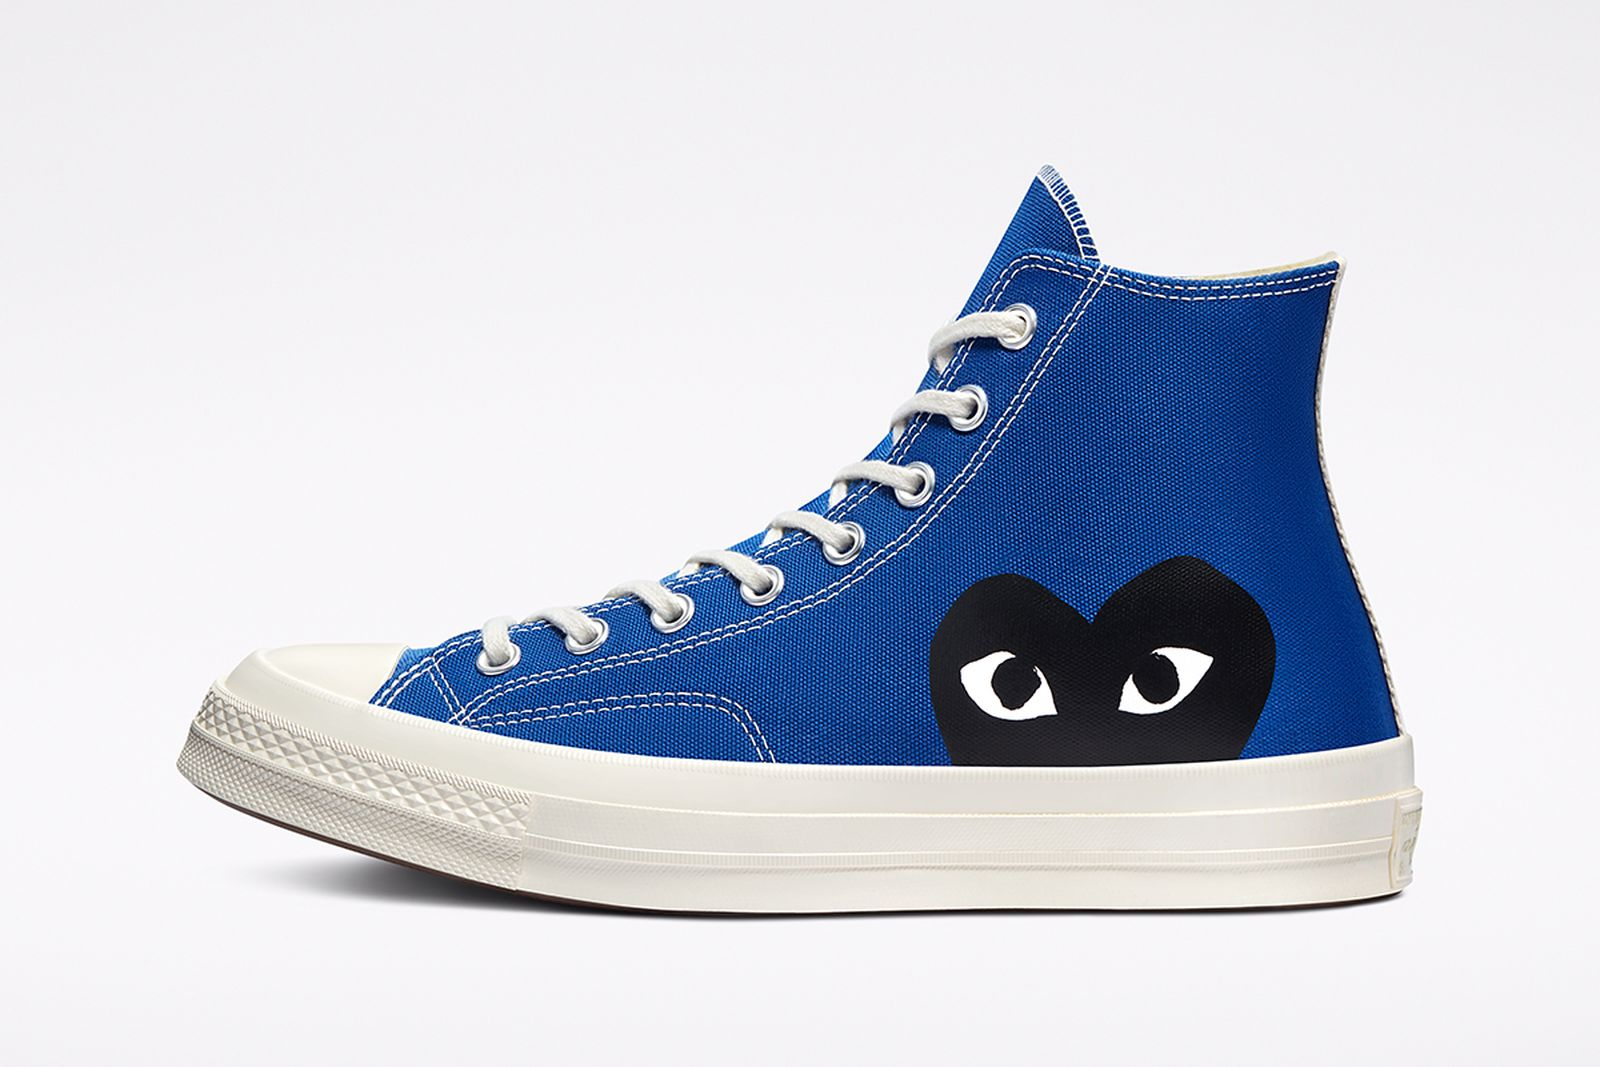 comme-des-garcons-play-converse-chuck-70-blue-gray-release-date-price-1-02